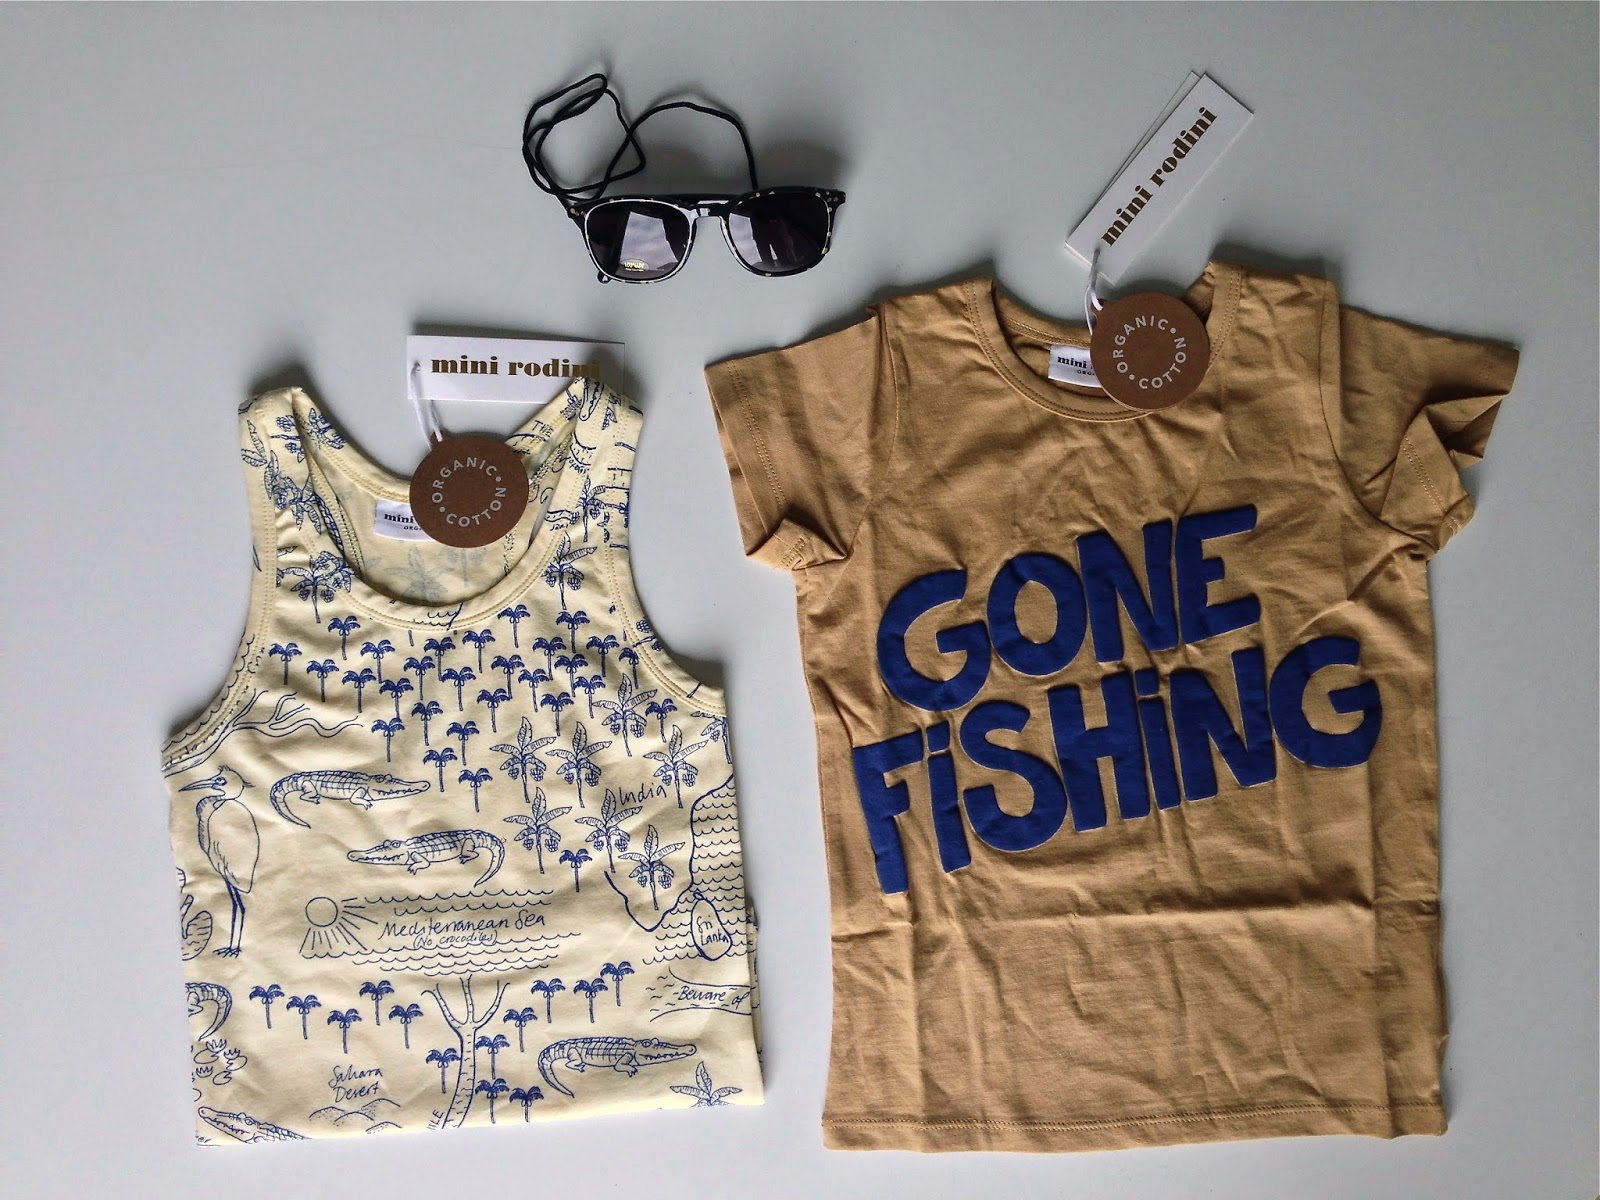 Mini Rodini ss15, gone fishing tee, croco map tank, spot sunglasses